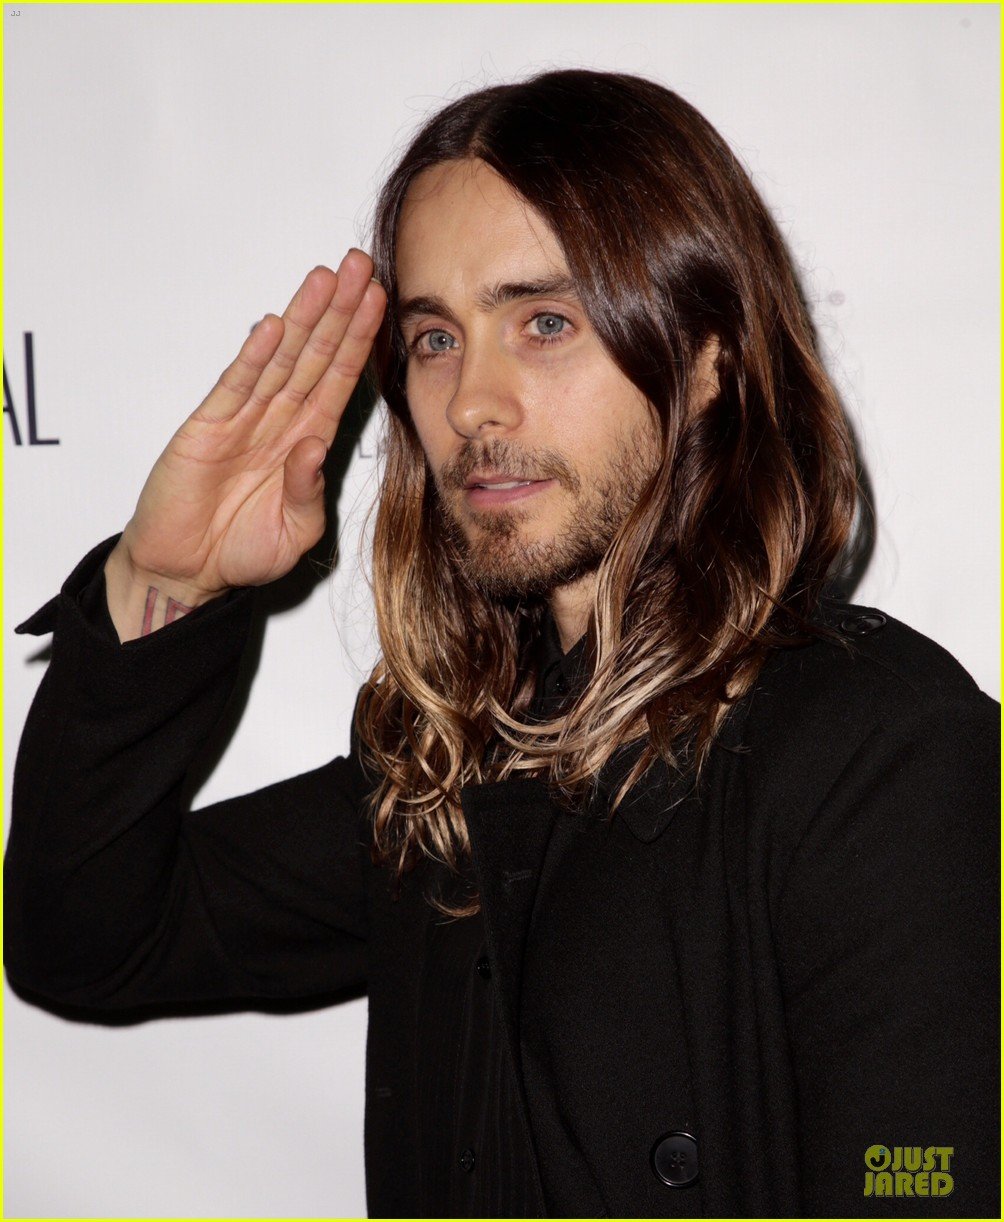 jared leto celebrates flawless la confidential magazine cover 023062607